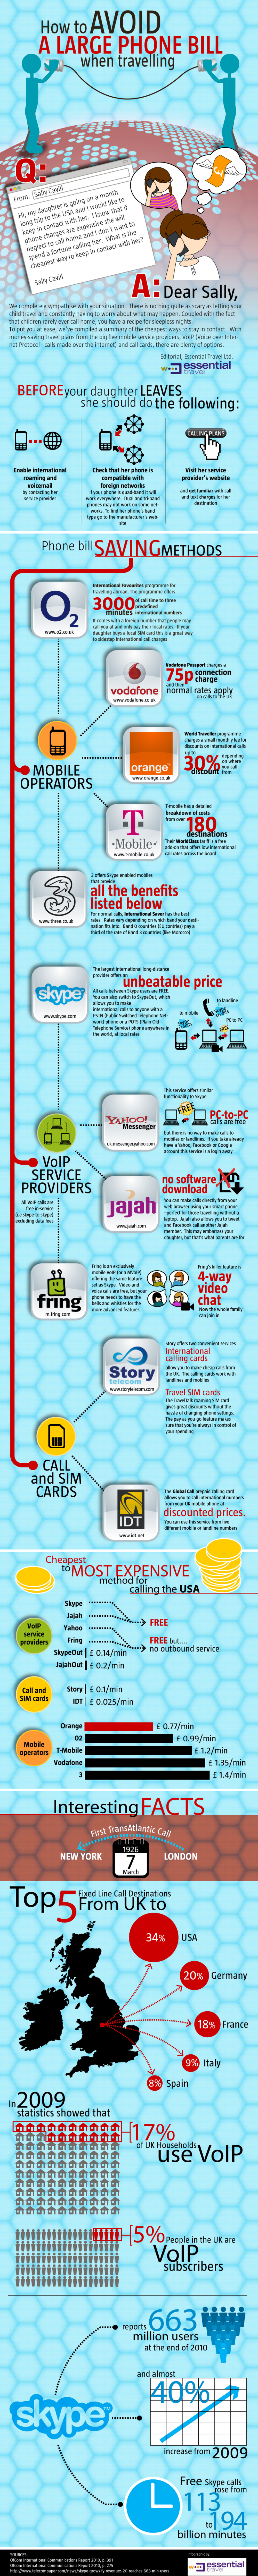 Saving Money on International Calling international-calls Infographic